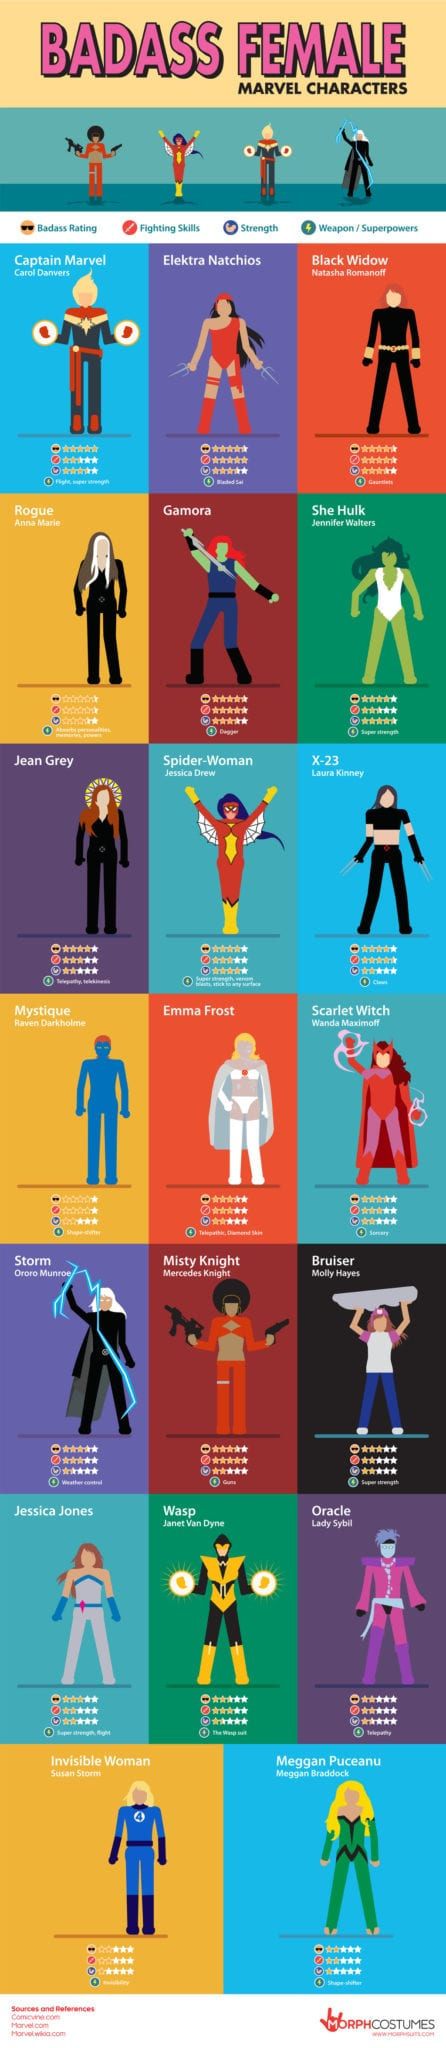 Female Superheroes, The Most Baddass Female Marvel Characters, Captain Marvel,